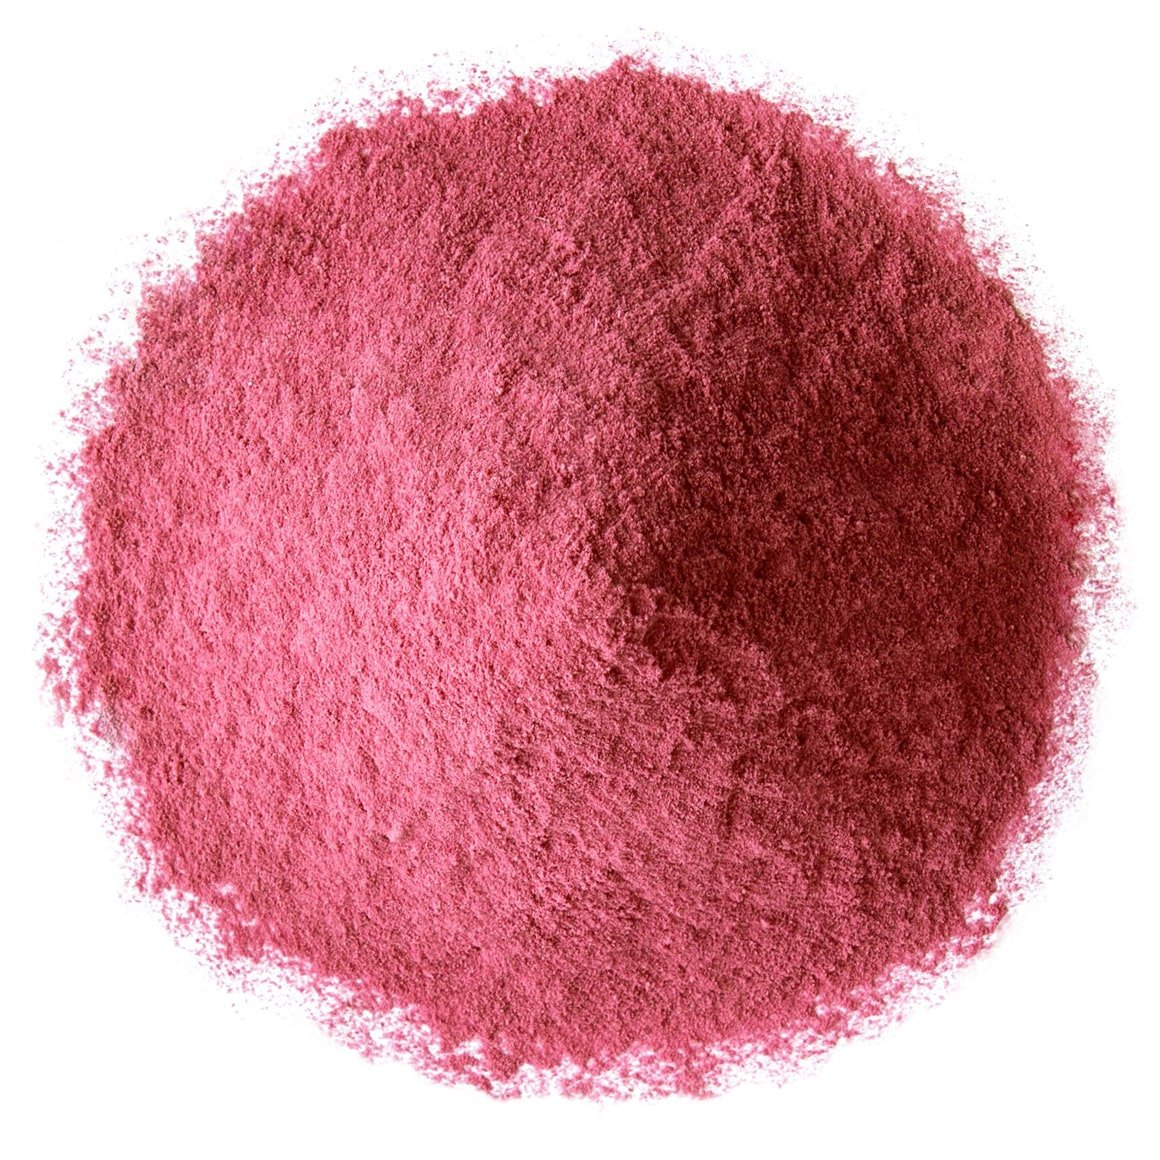 Organic Raspberry Powder